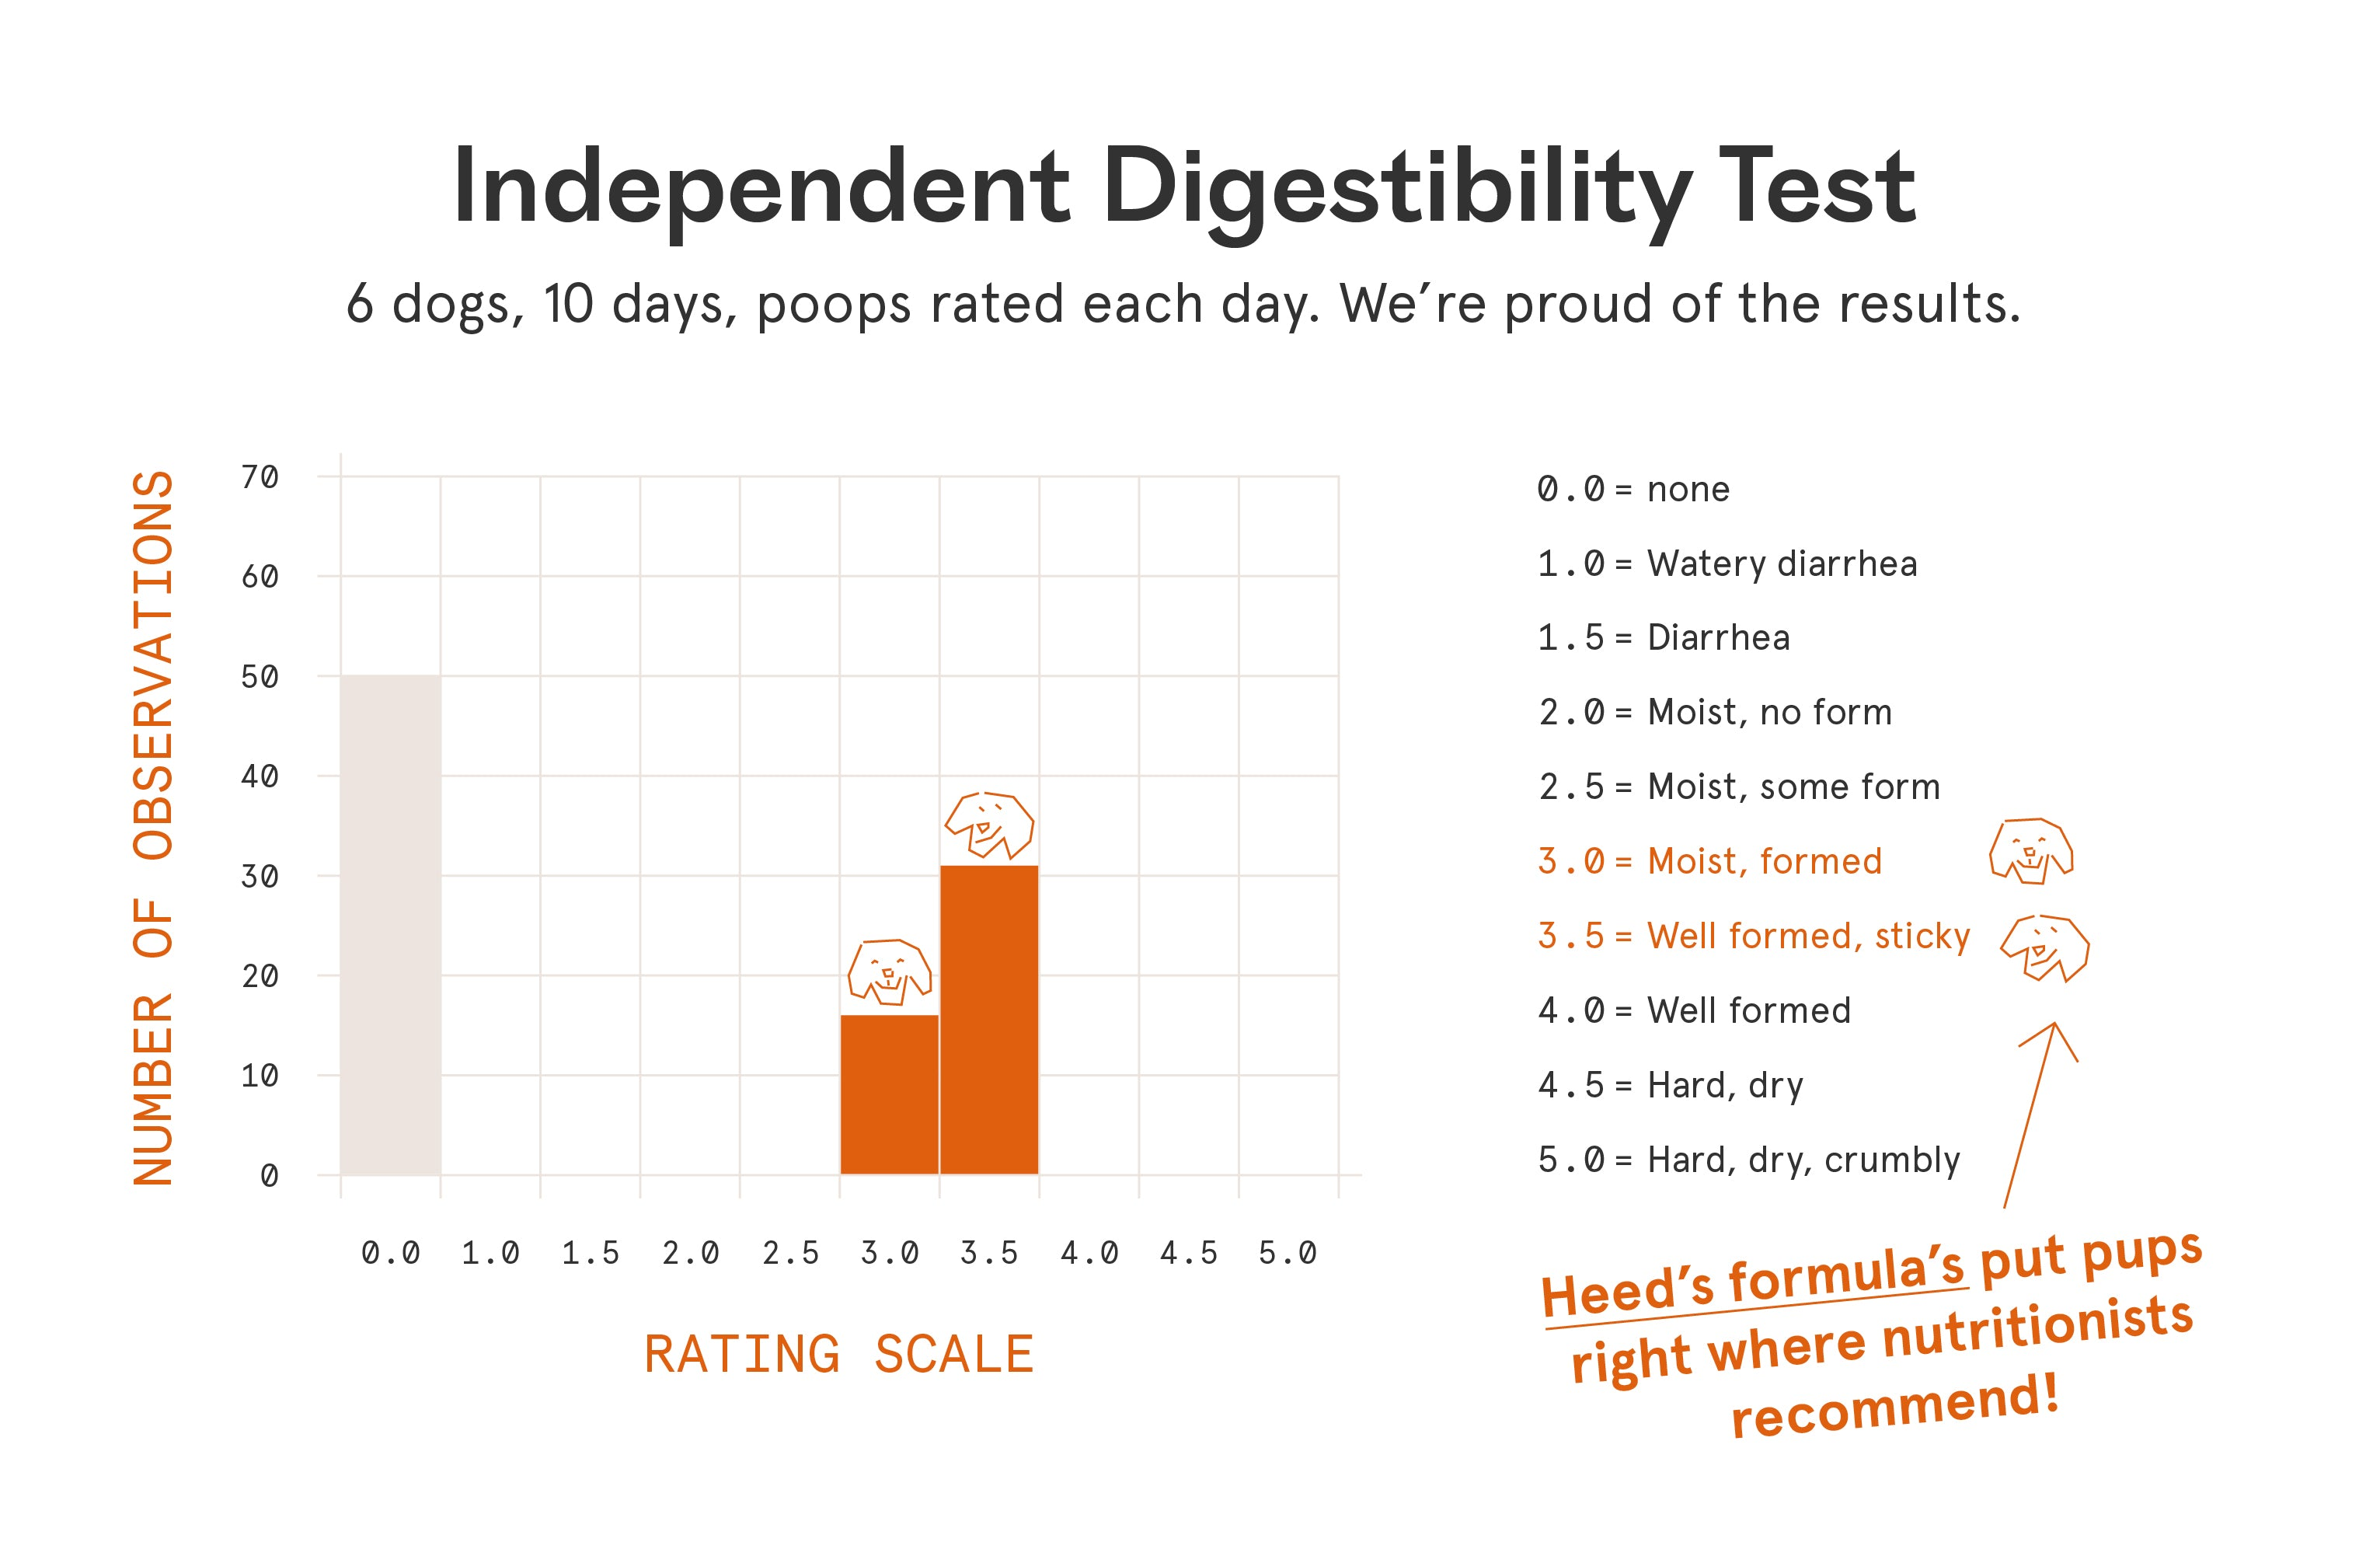 Digestibility Test Results